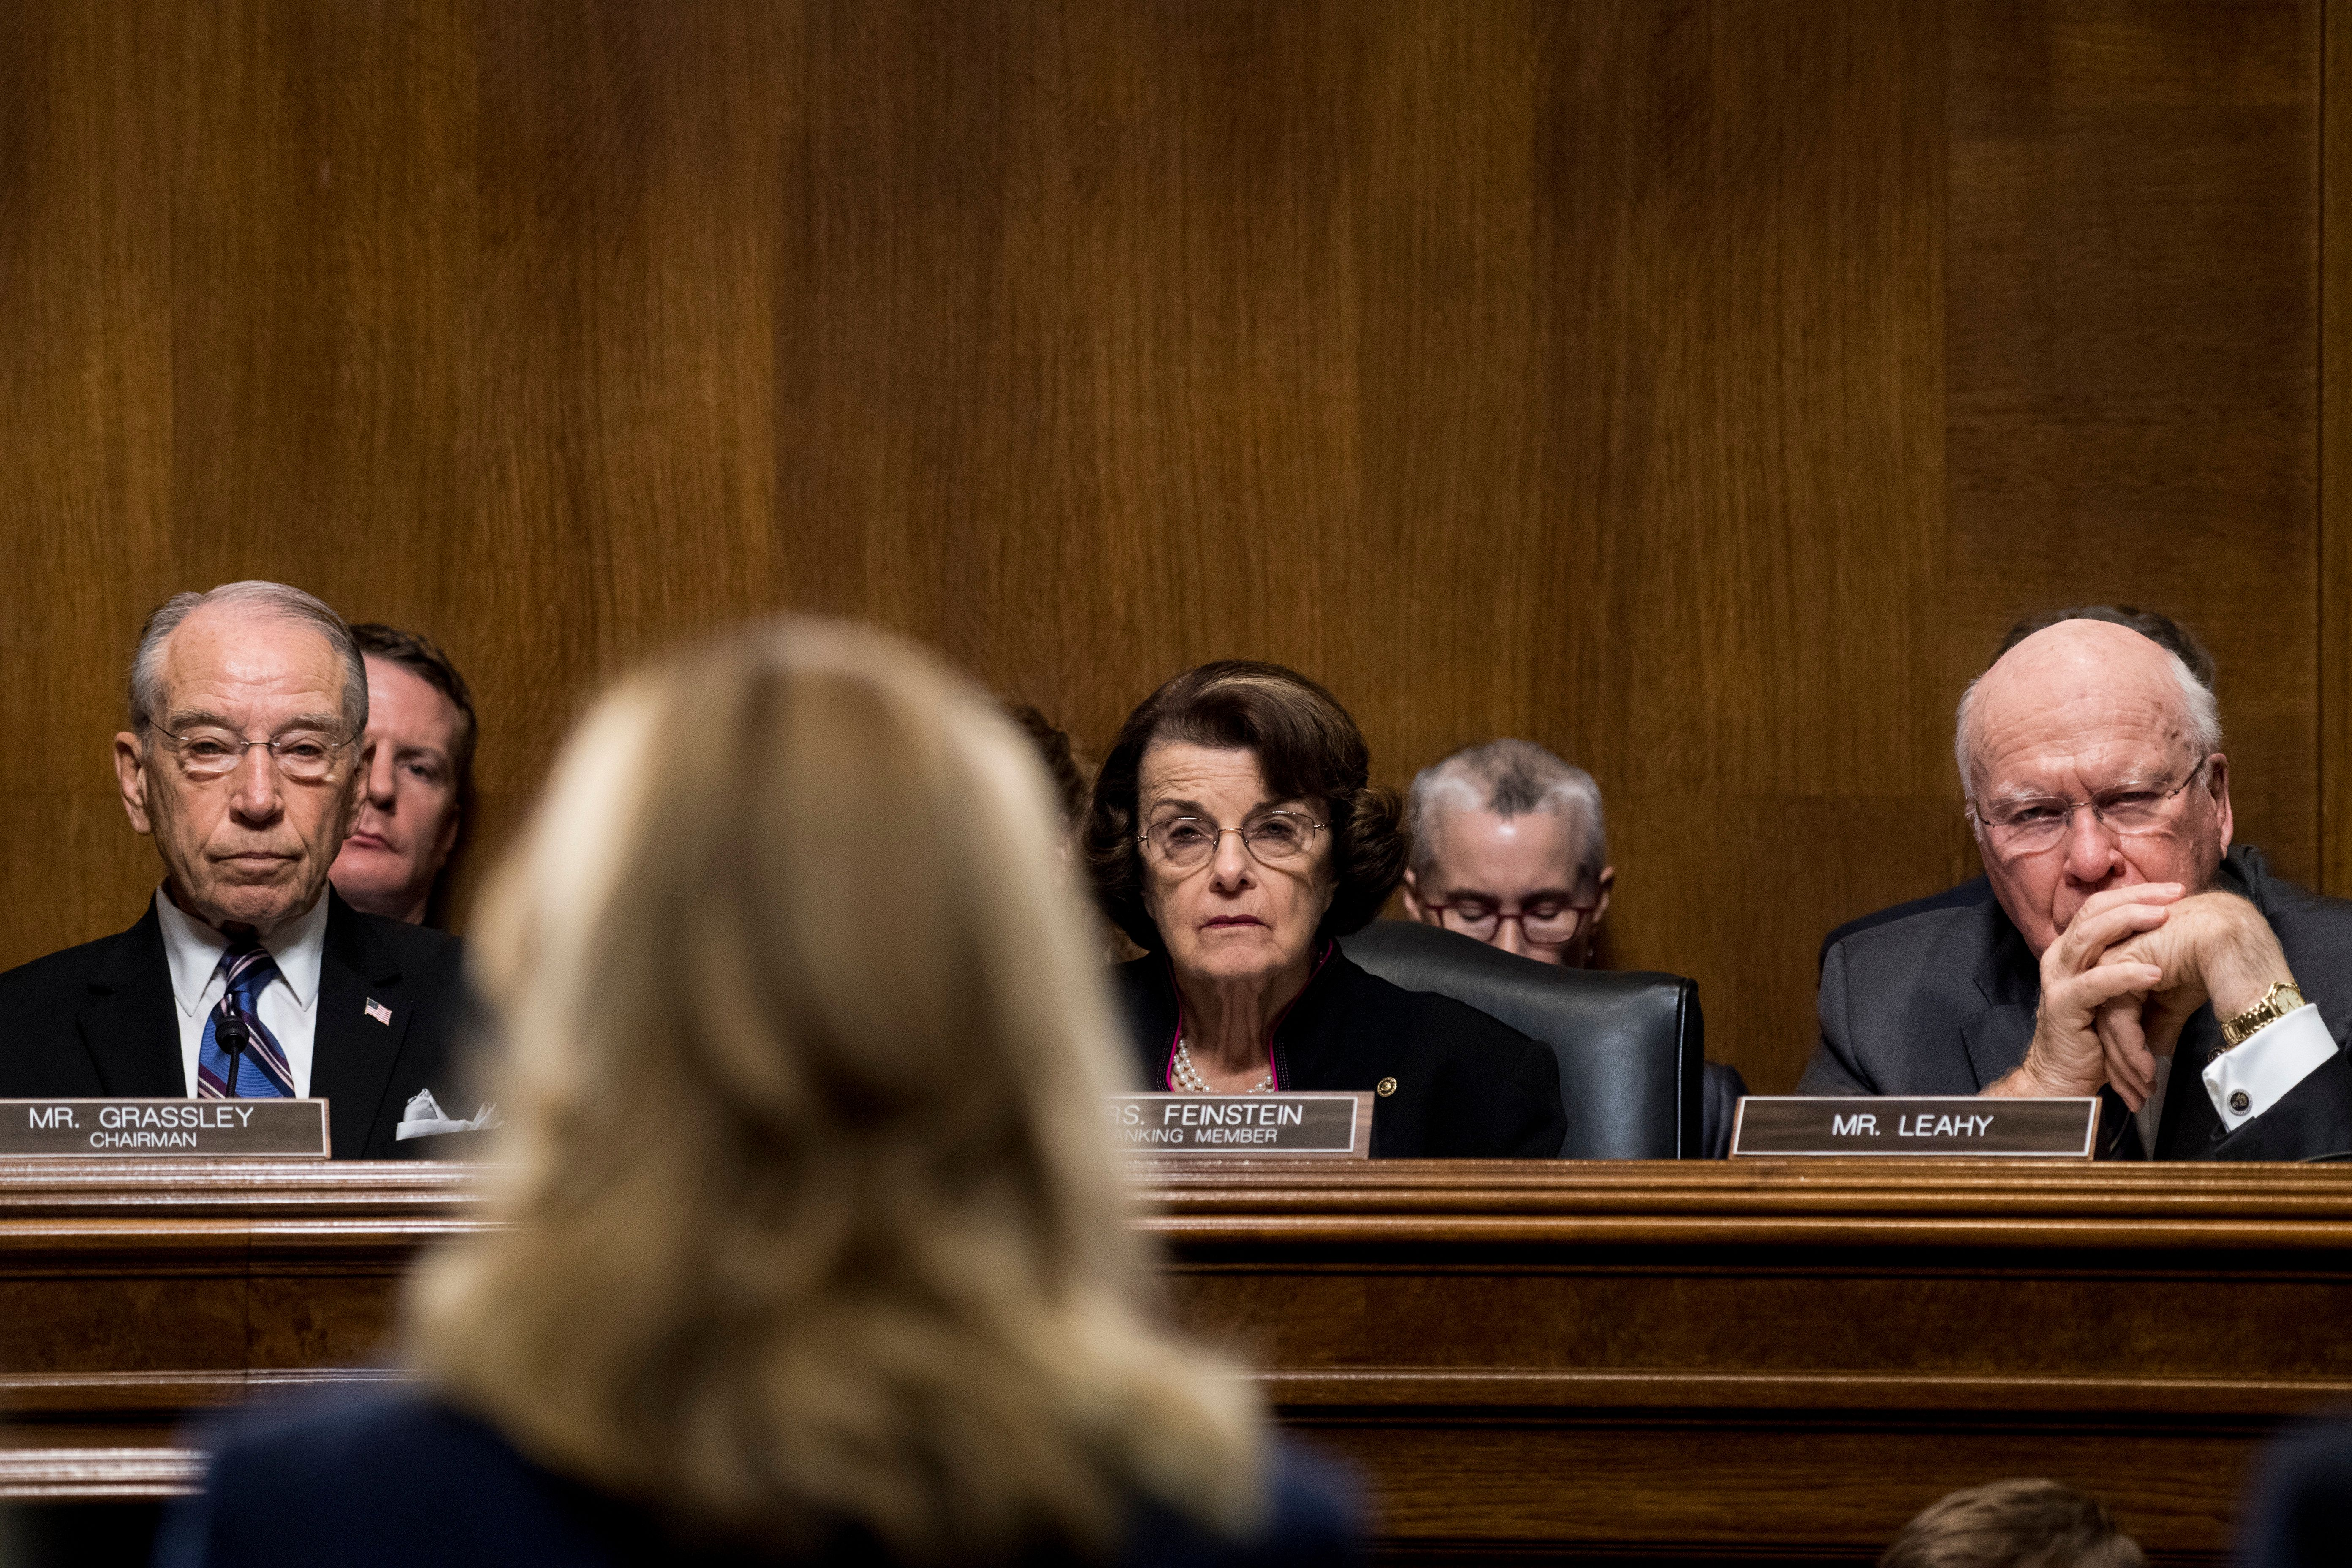 Why Did Christine Blasey Ford Have To Perform Her Victimhood For